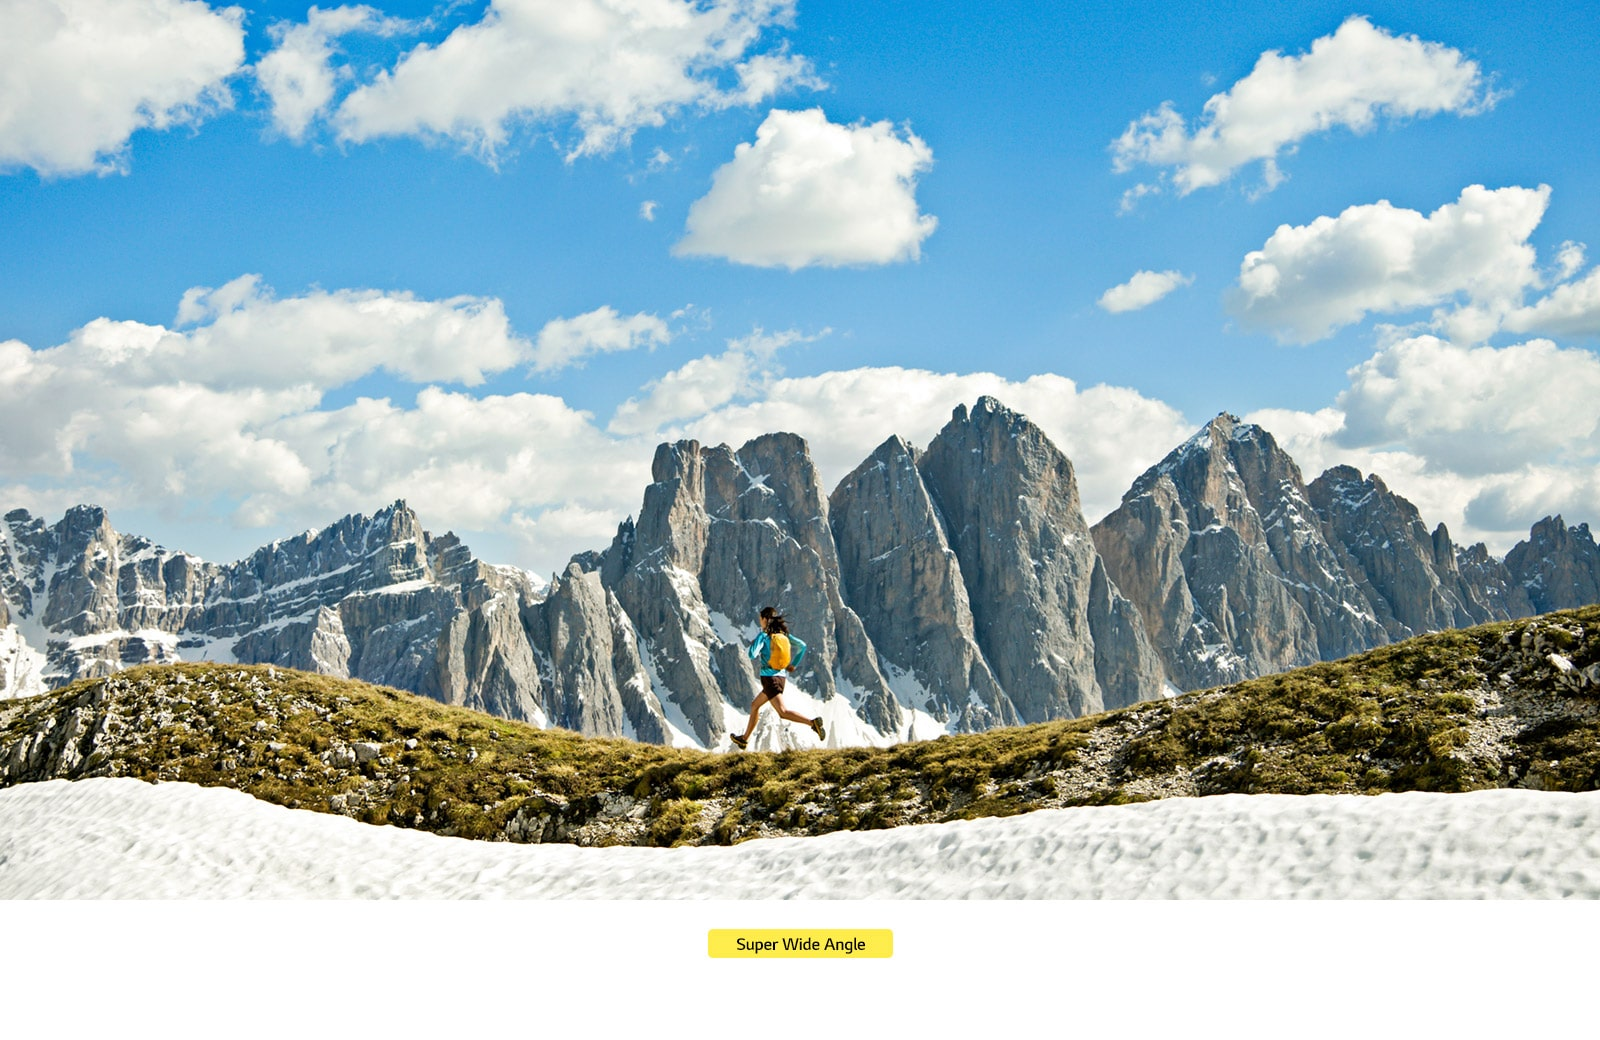 Woman running on a scenic mountain.